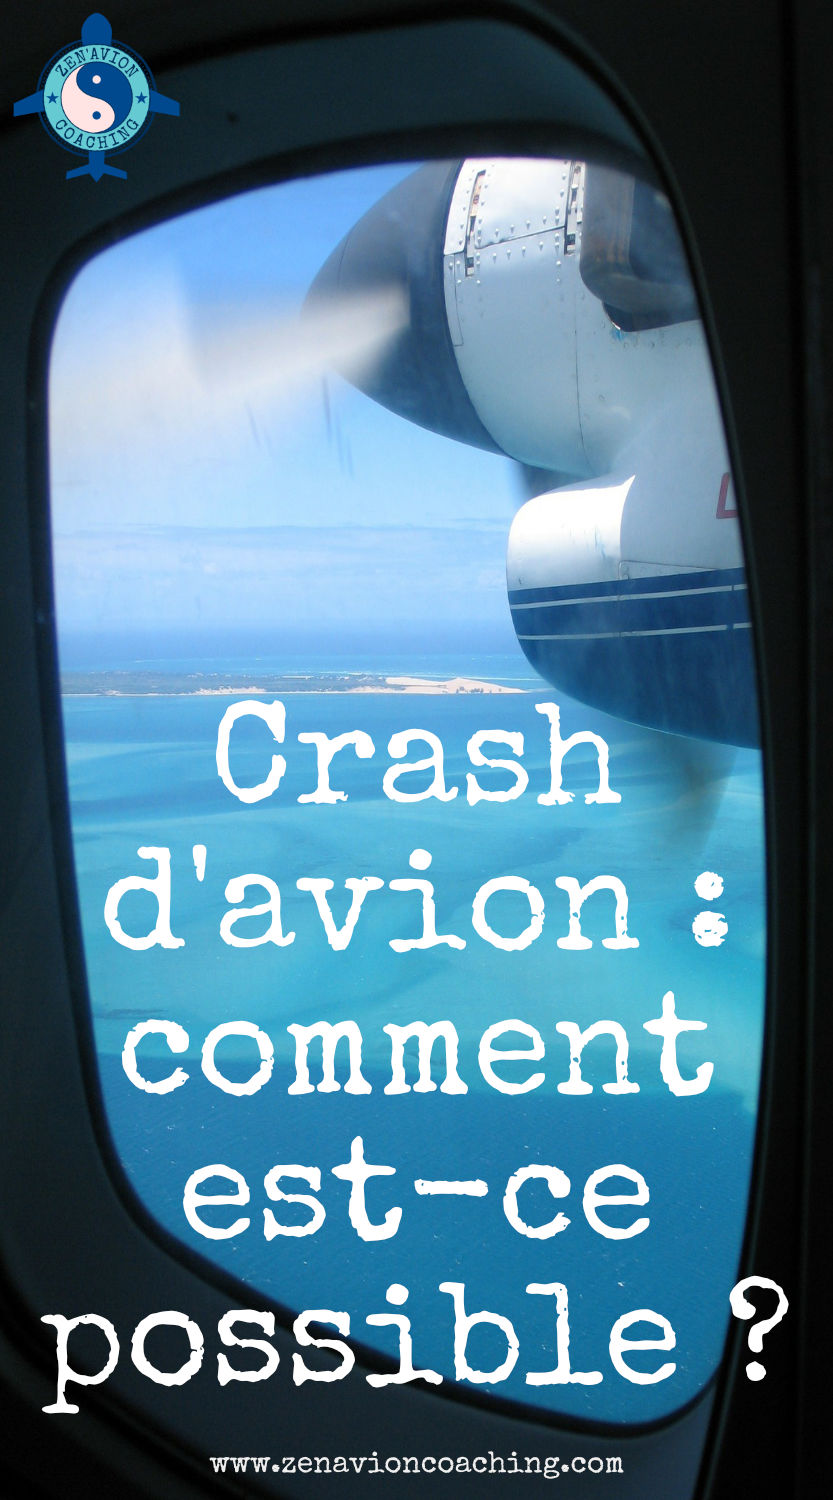 Crash avion 1